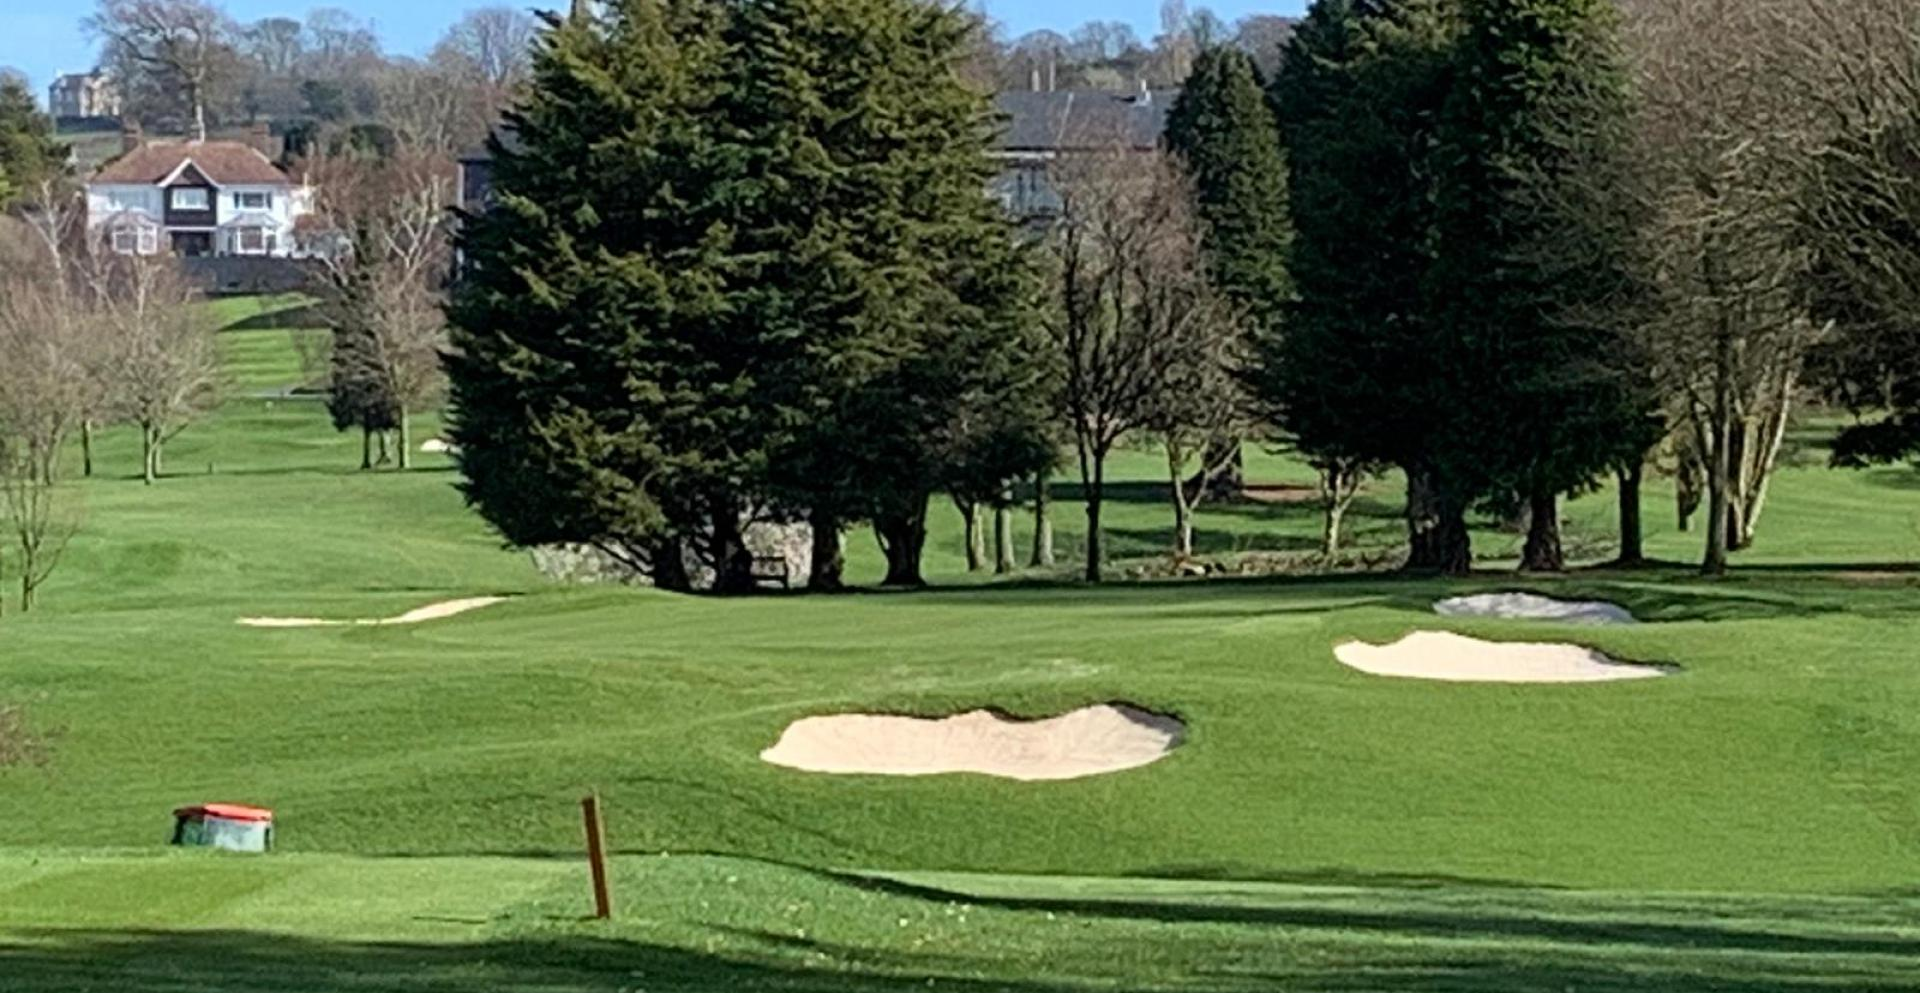 The renovated 14th hole at Belvoir Park